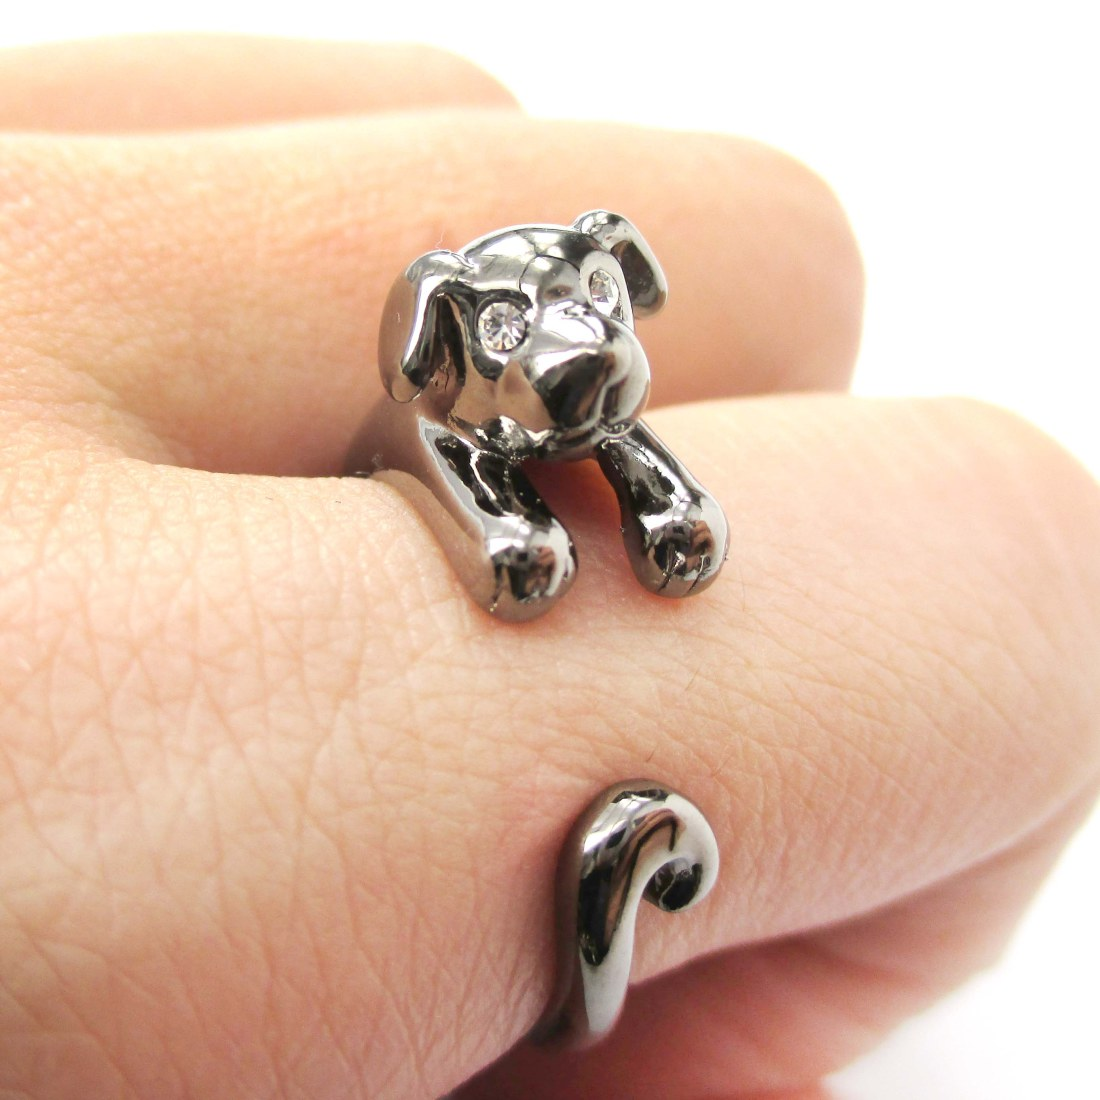 Realistic Puppy Dog Animal Pet Wrap Around Ring in Gunmetal Silver Sizes 4 to 9